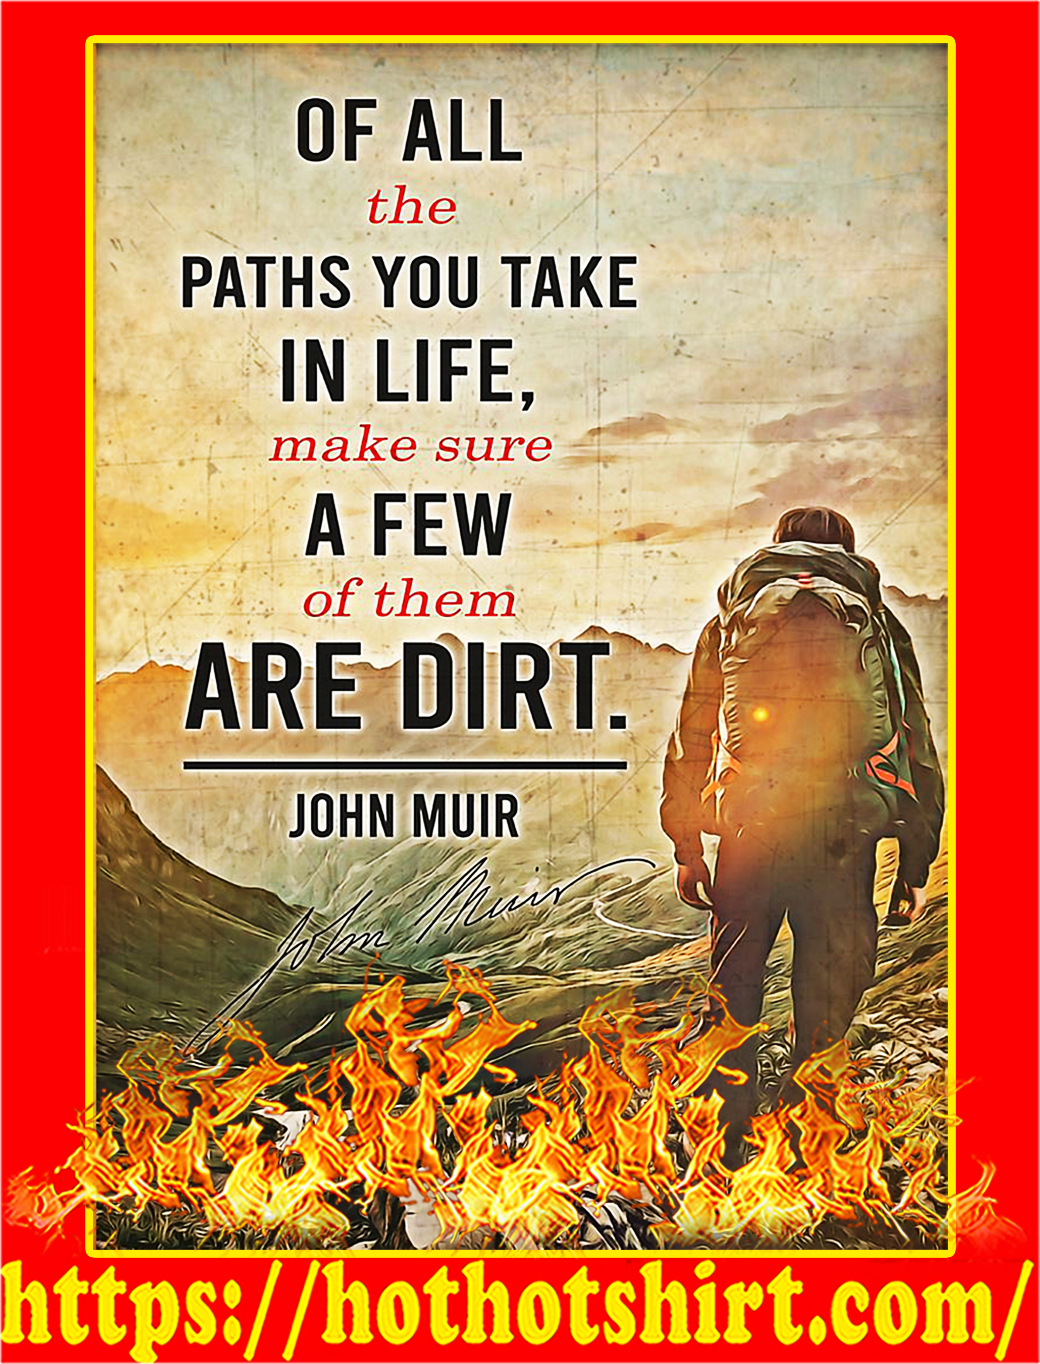 John muir Off all the paths you take in life poster - A3